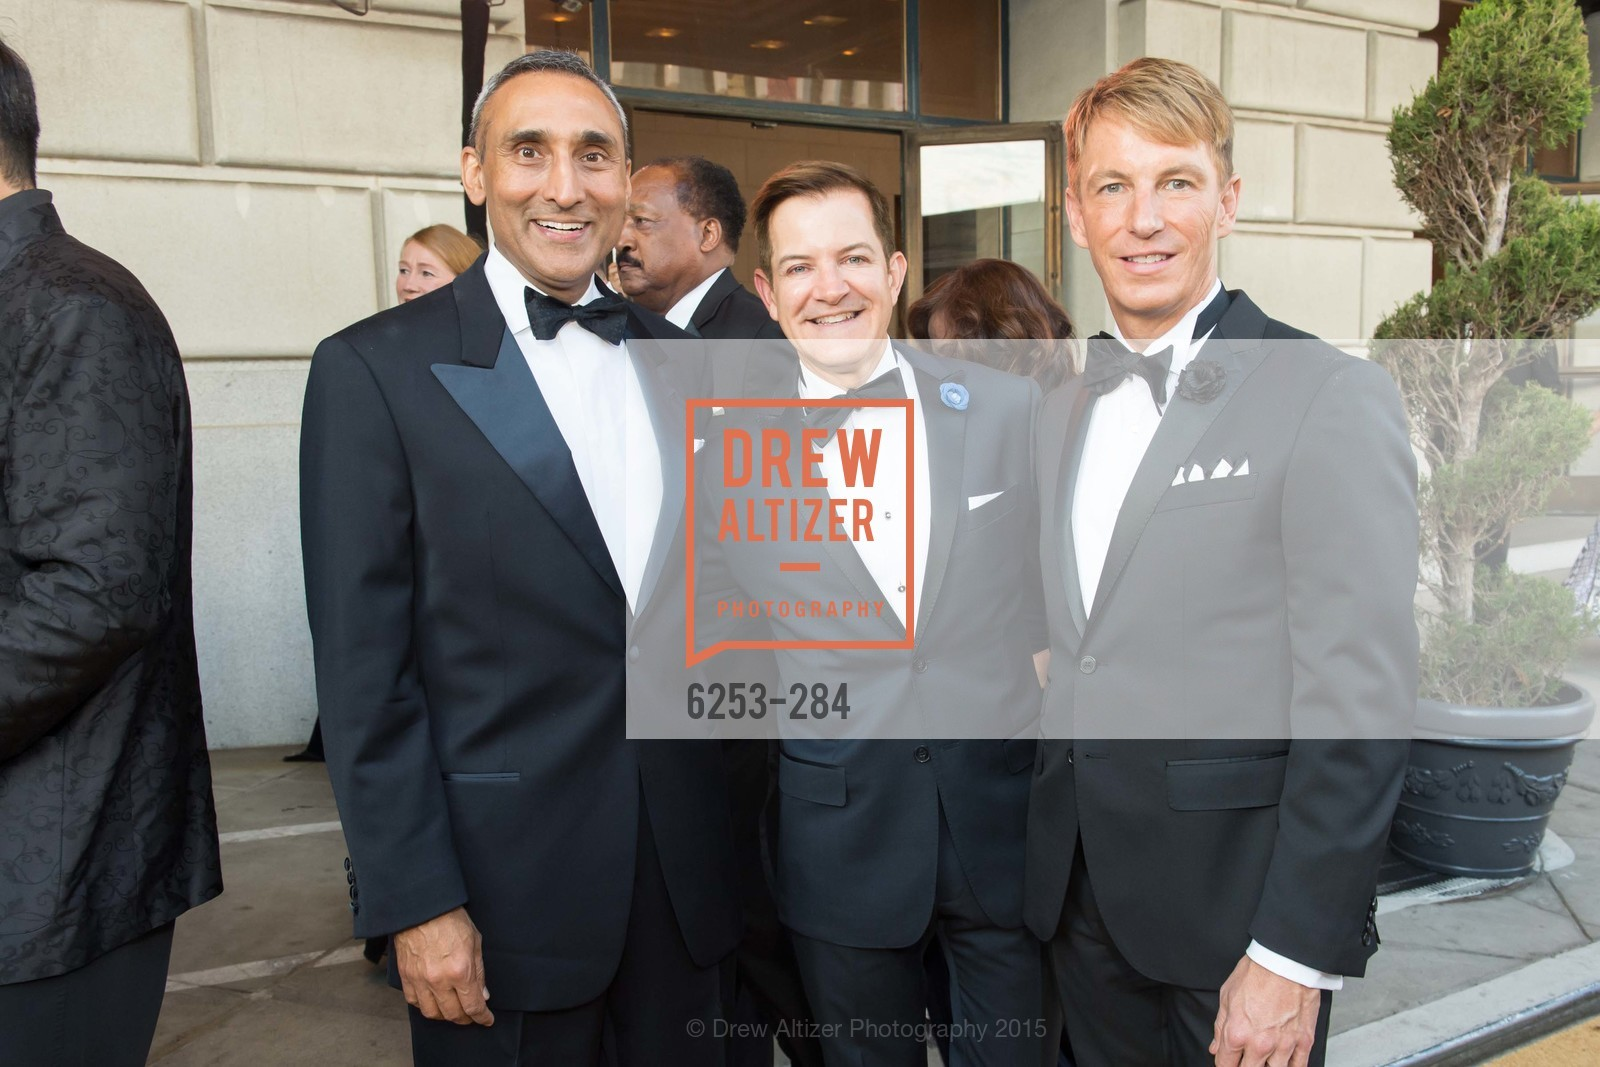 Inder Dhillon, Trent Norris, Jack Calhoun, Opera Ball 2015: Moonlight & Music, War Memorial Opera House. 301 Van Ness Ave, September 11th, 2015,Drew Altizer, Drew Altizer Photography, full-service agency, private events, San Francisco photographer, photographer california